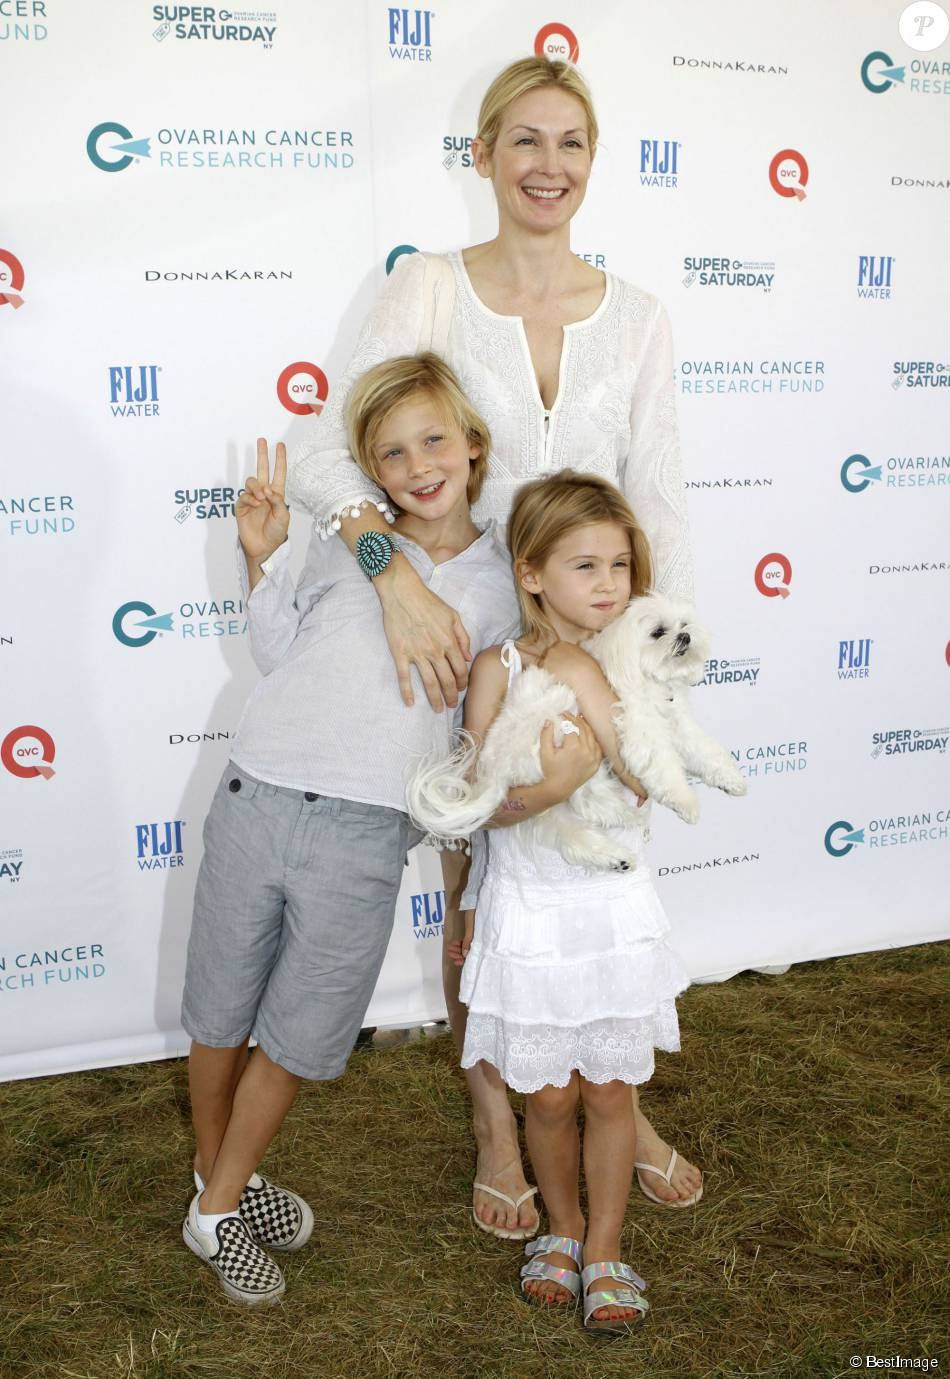 "Malgré la perte définitive de la garde de ses enfants, qu'elle a pour tout l'été en vacances, l'actrice Kelly Rutherford, son fils Hermes et sa fille Helena ont assisté à l'oeuvre caritative ""Ovarian Cancer Research Fund's Super Saturday"" à Water Mill. Le 25 juillet 2015 PLEASE HIDE CHILDREN'S FACE PRIOR TO THE PUBLICATION - 51808939 Actress Kelly Rutherford was in good spirits while attending the Ovarian Cancer Research Fund's Super Saturday NY at Nova's Ark Project with her two children on July 25, 2015 in Water Mill, New York. Kelly posed for playful photos with Hermes, 8, Helena, 6, despite her ongoing custody battle with ex-husband Daniel Giersch, which has lasted for more than six years. Kelly just took a blow to her custody case in California and has her children with her until the end of Summer, but the case is not looking good for her...26/07/2015 - Water Mill"